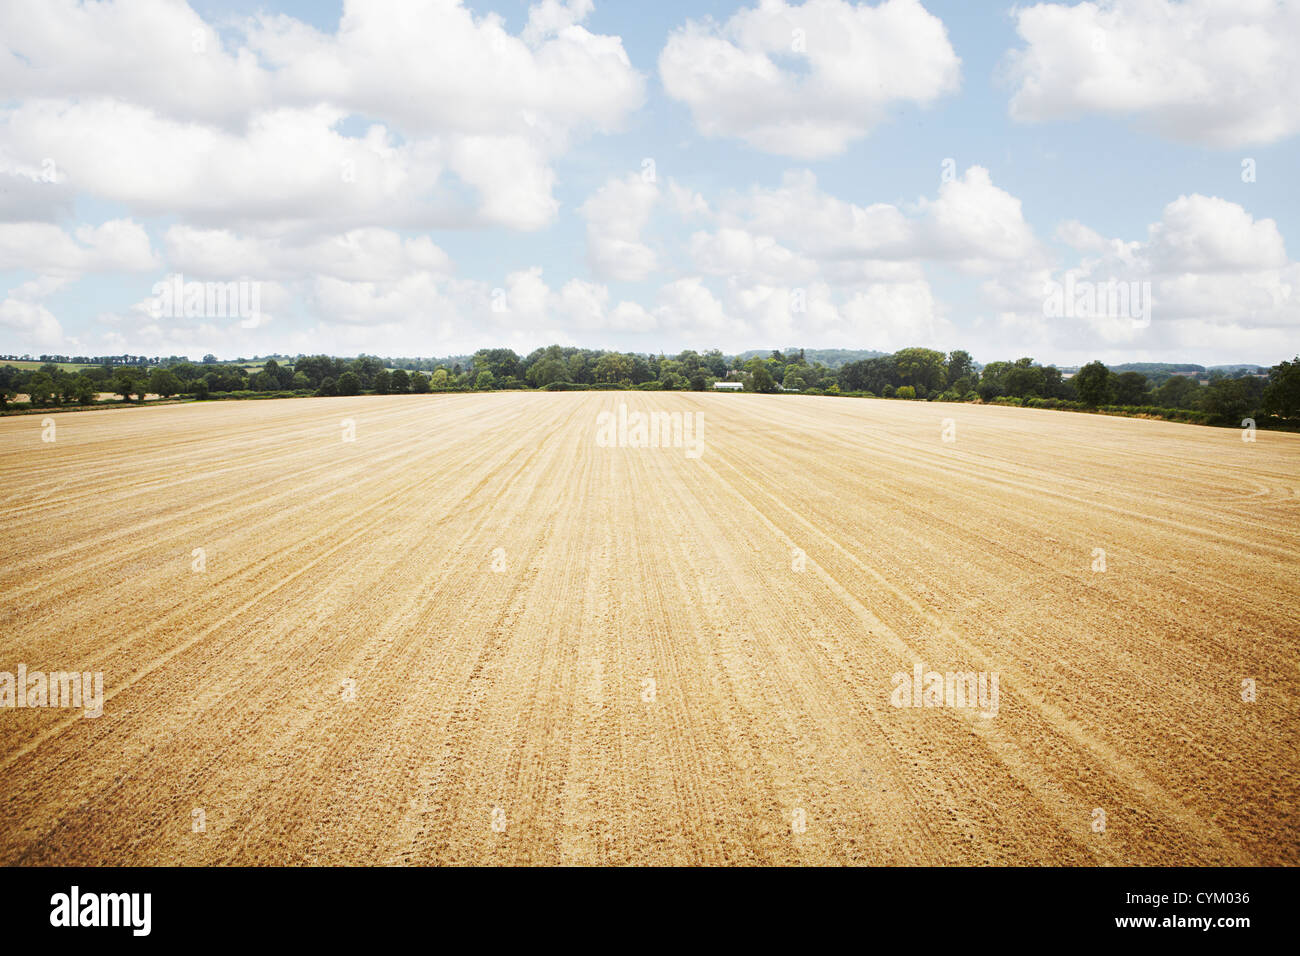 Aerial view in tilled crop field - Stock Image